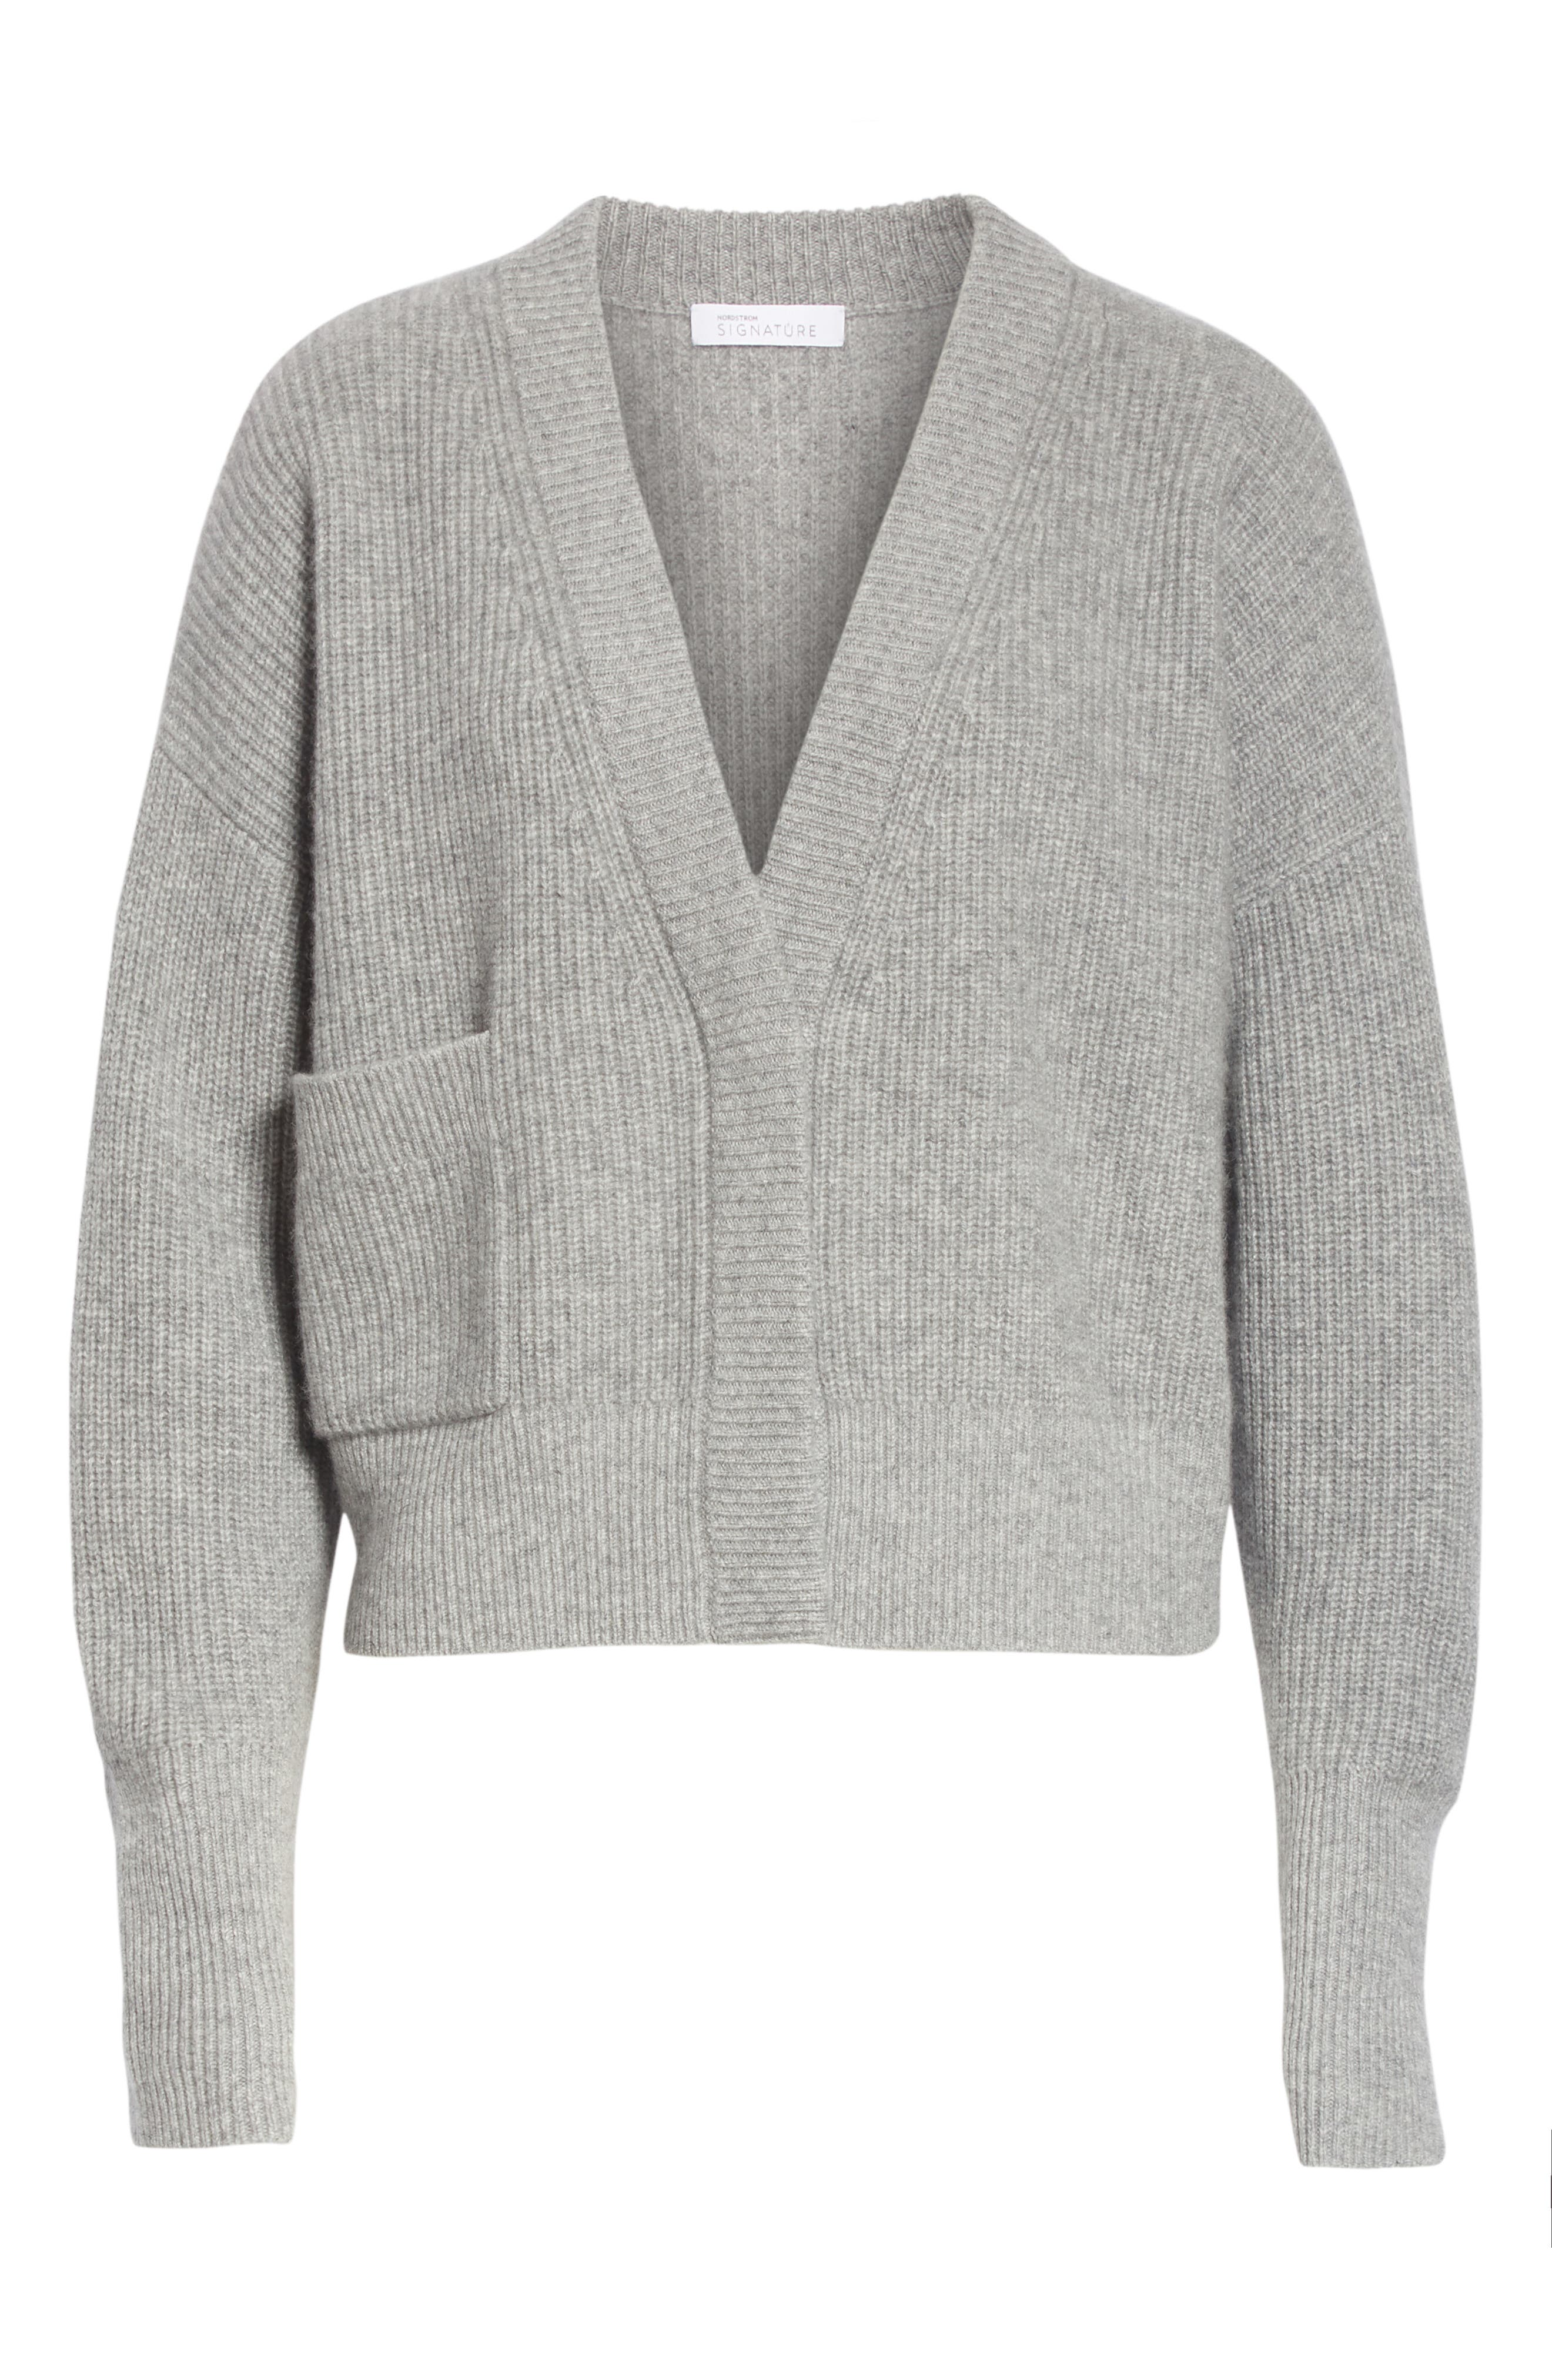 One-Pocket Cashmere Cardigan,                             Alternate thumbnail 6, color,                             030